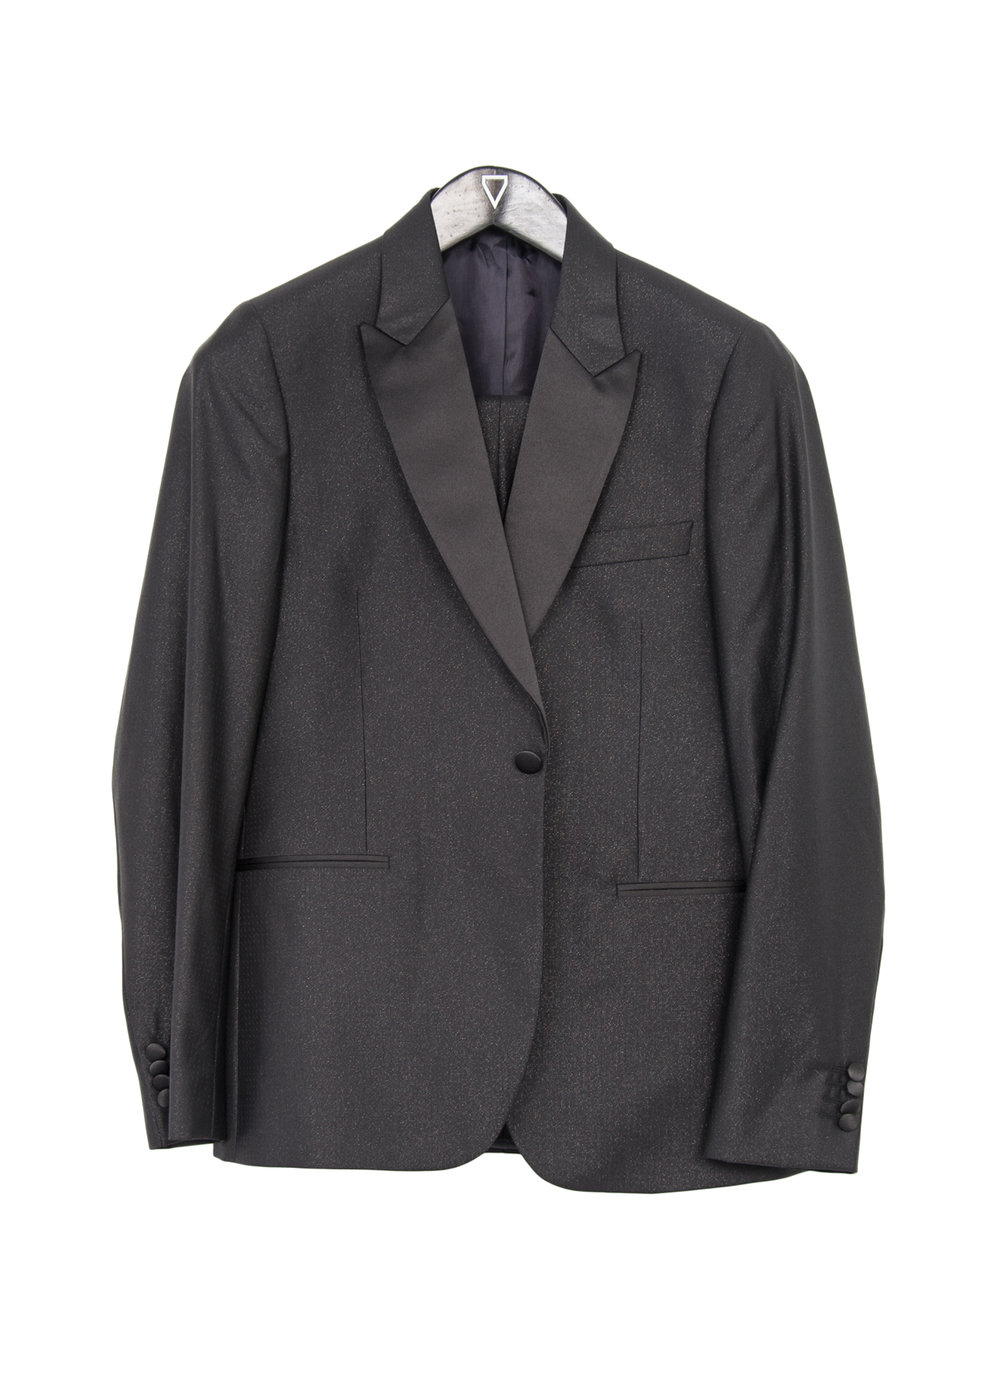 "42 PAUL SMITH TUXEDO ""PAUL-TUX01-42"""